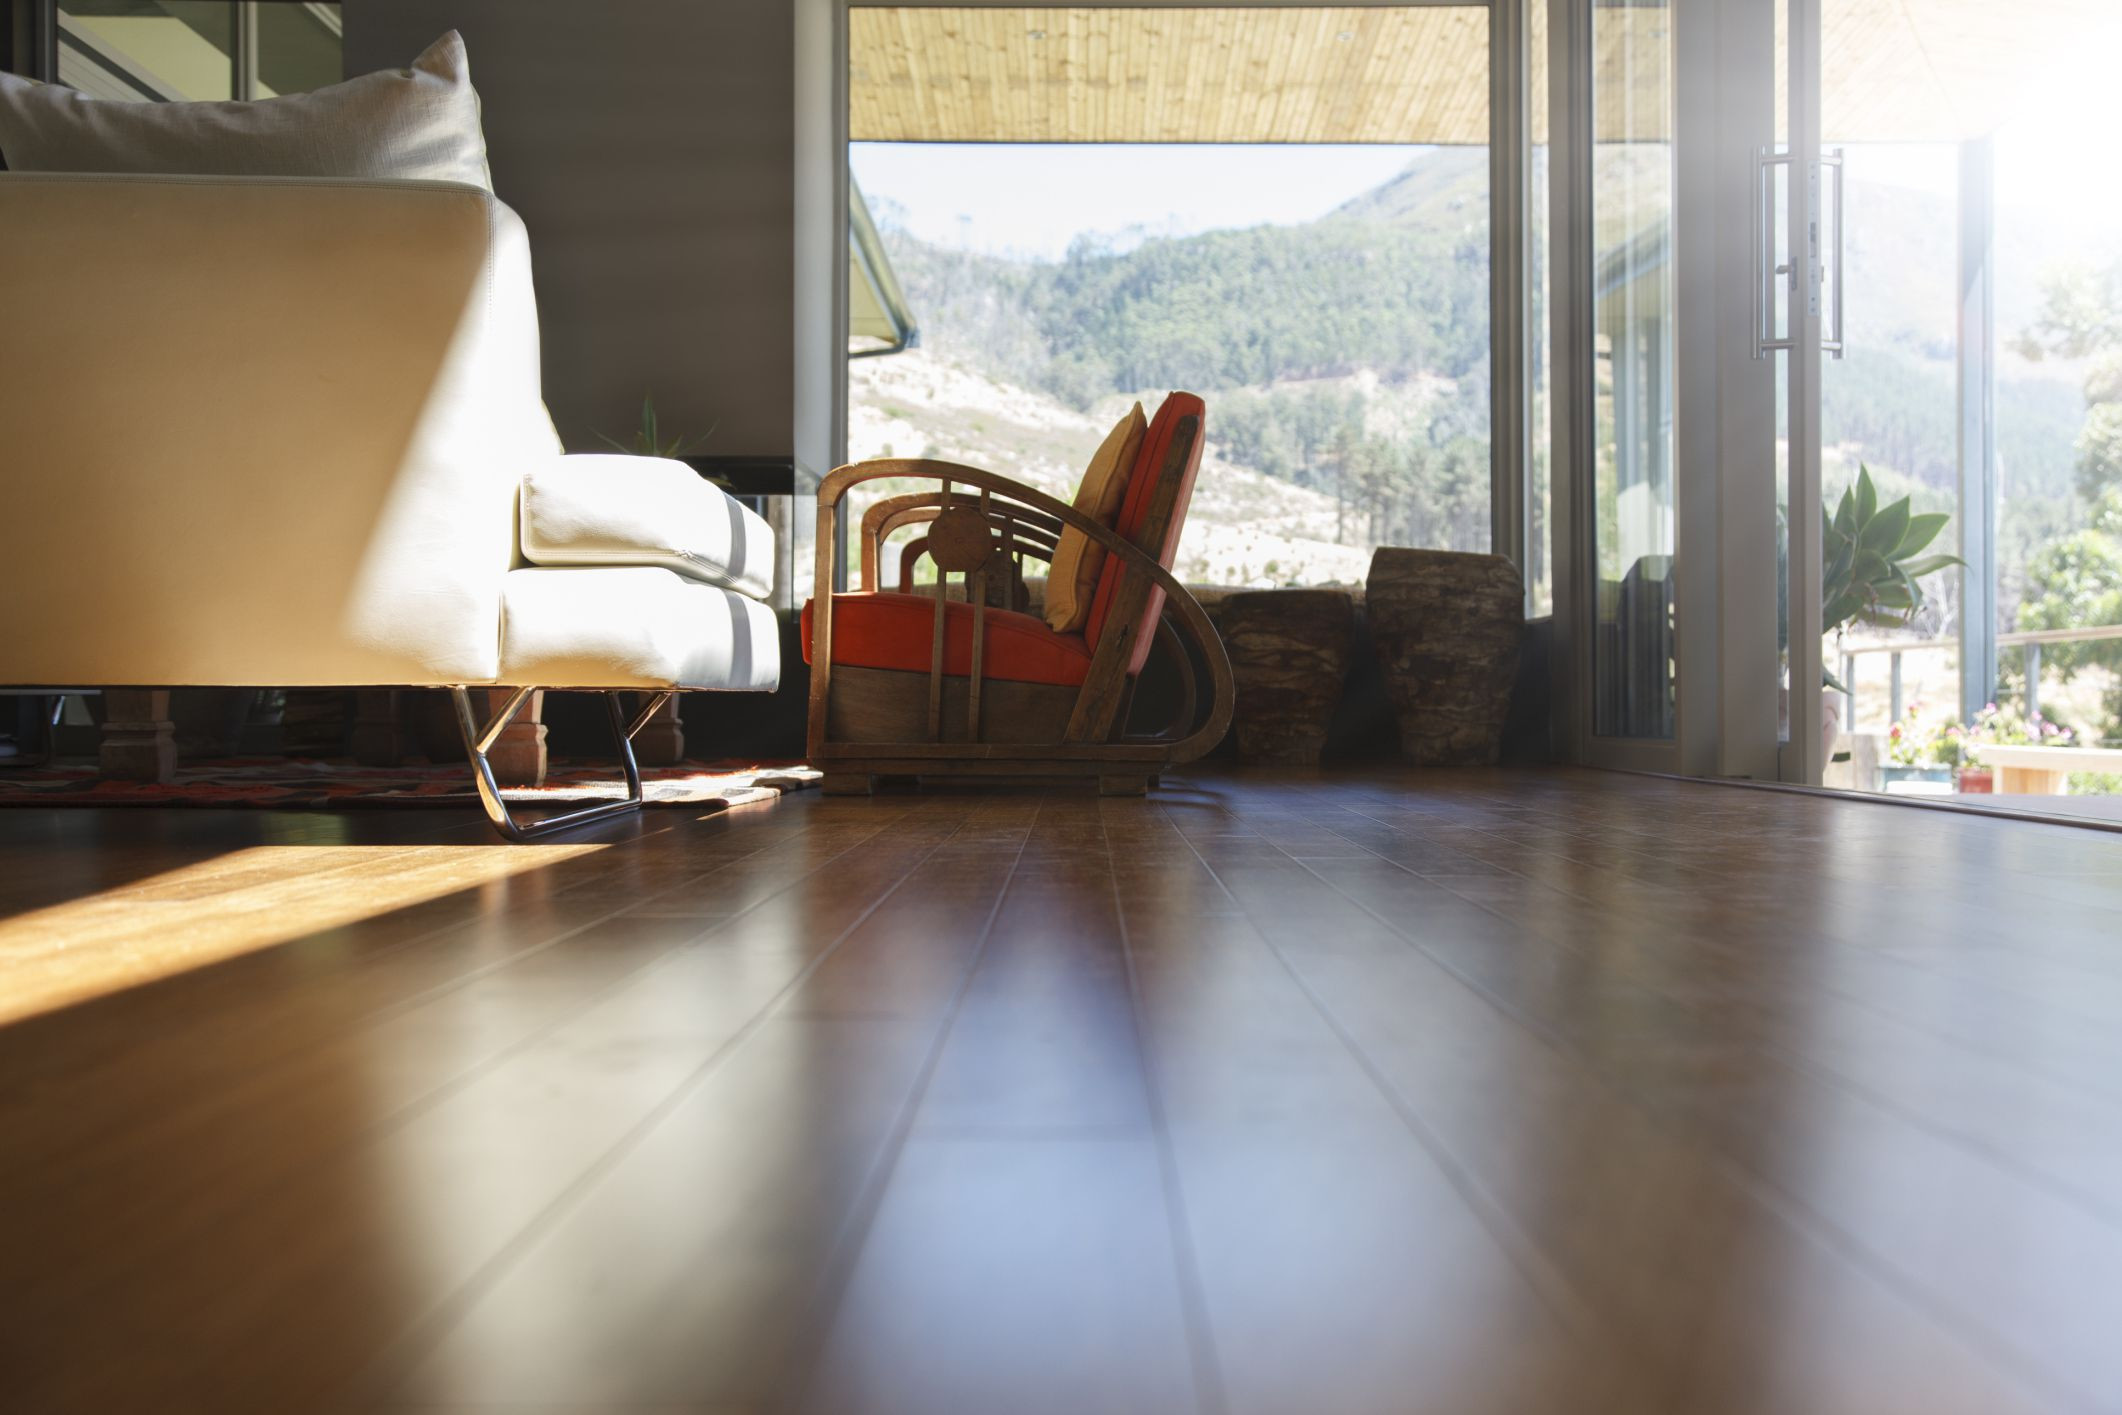 installing hardwood floors on concrete slab of floating floors basics types and pros and cons throughout exotic hardwood flooring 525439899 56a49d3a3df78cf77283453d